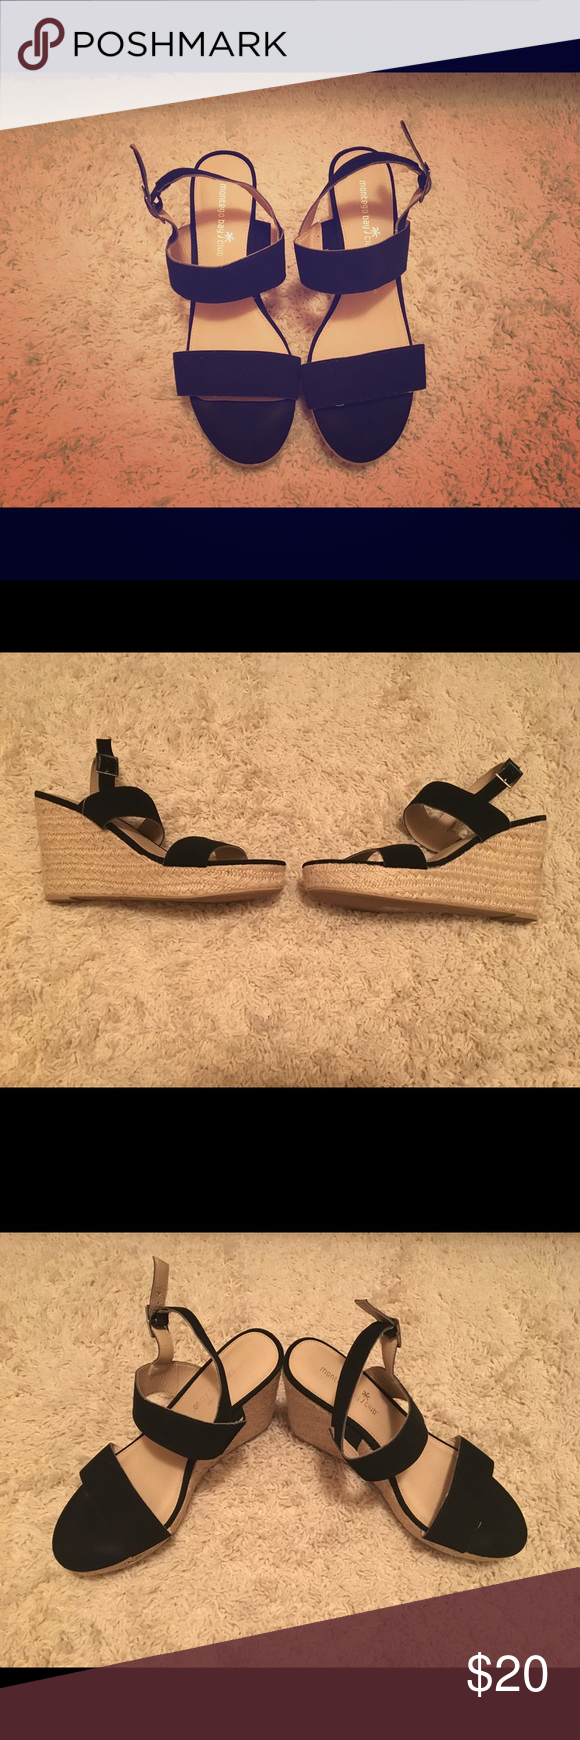 Women's black espadrille wedges Worn once. Very good condition. Adjustable straps. Open to negotiations. Shoes Sandals